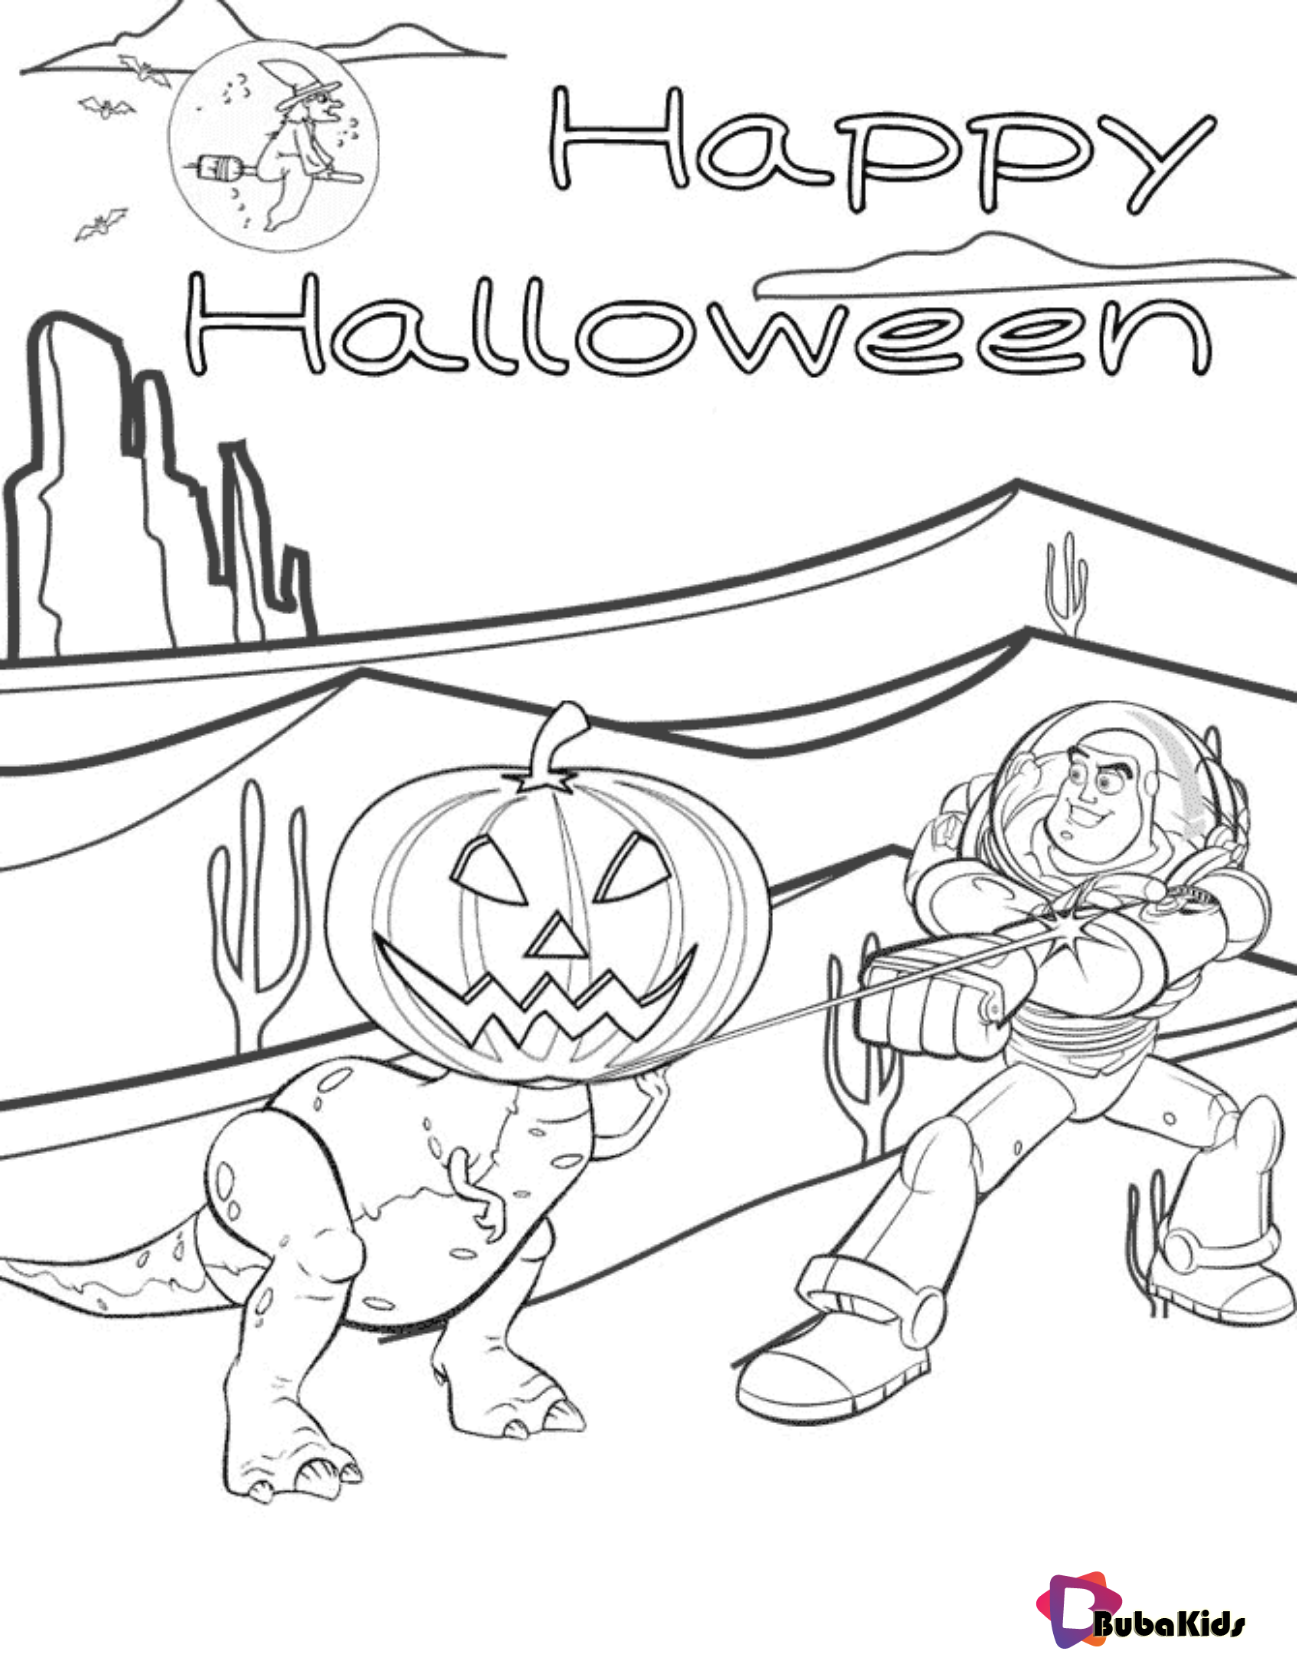 Toy Story 4 Rex And Buzz Lightyear Halloween Coloring Page On Bubakids Com Buzz Lightyear Toy Story Coloring Pages Halloween Coloring Halloween Coloring Pages